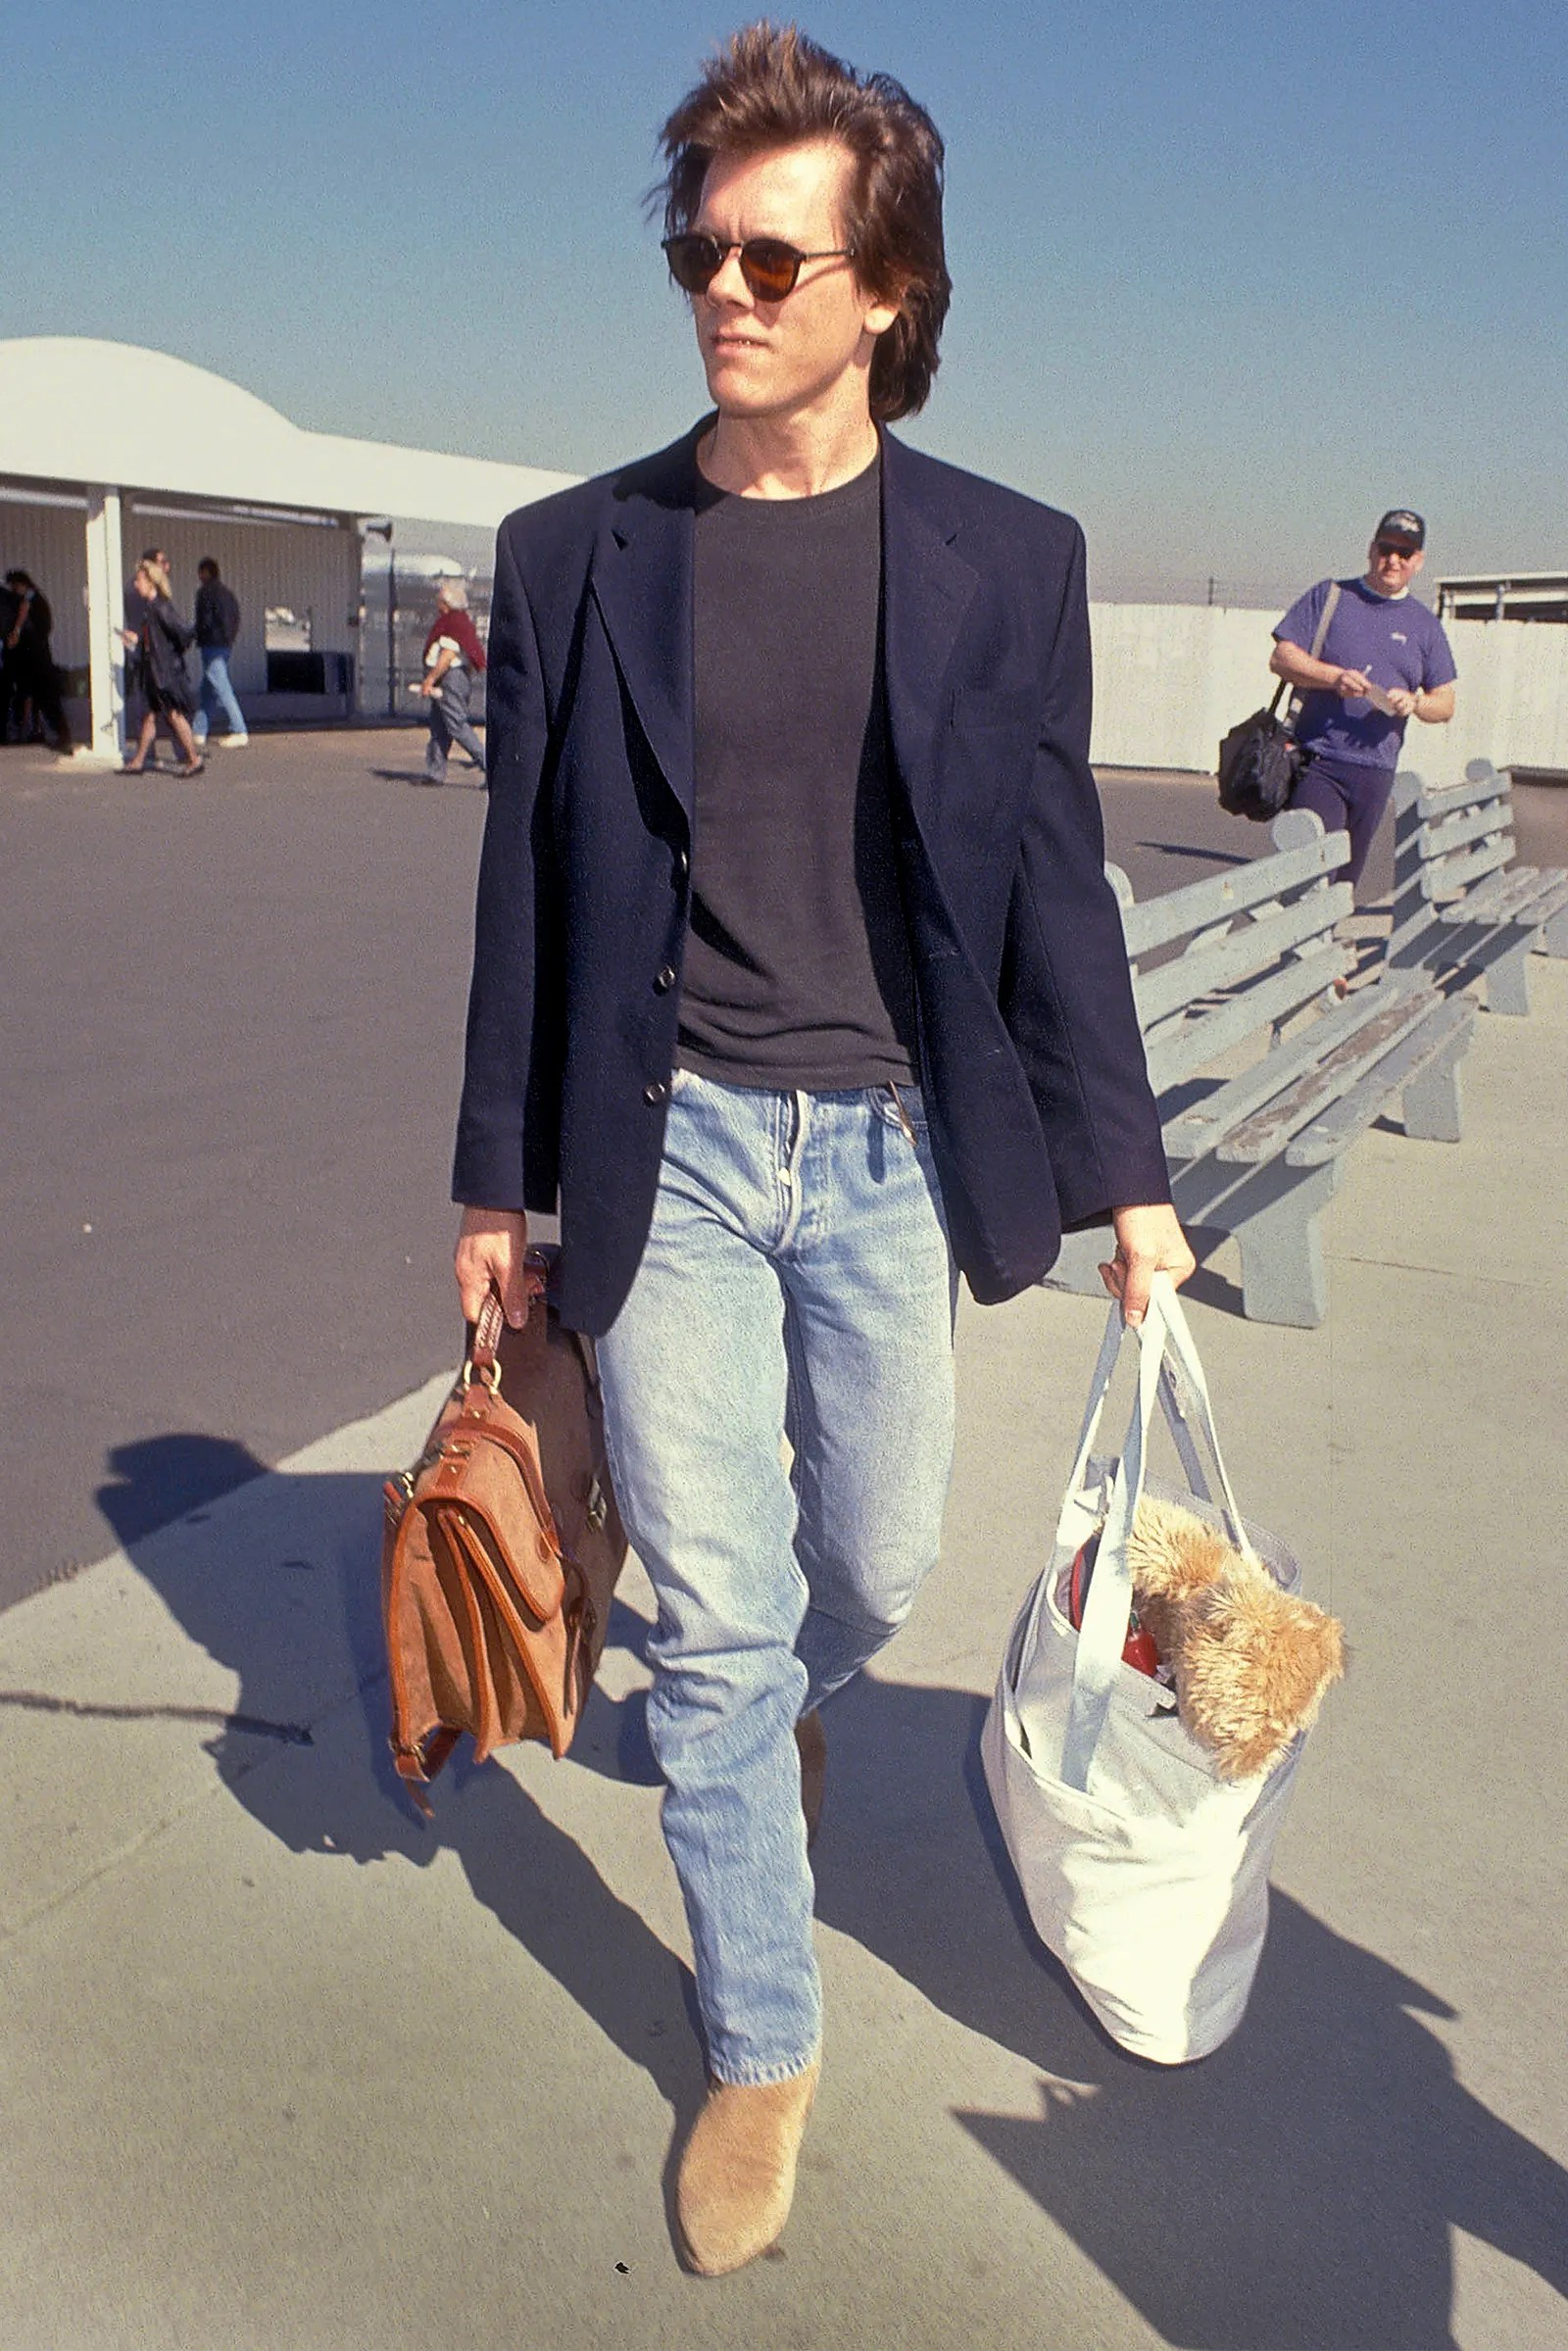 kevin bacon ariving at the airport in the 90s